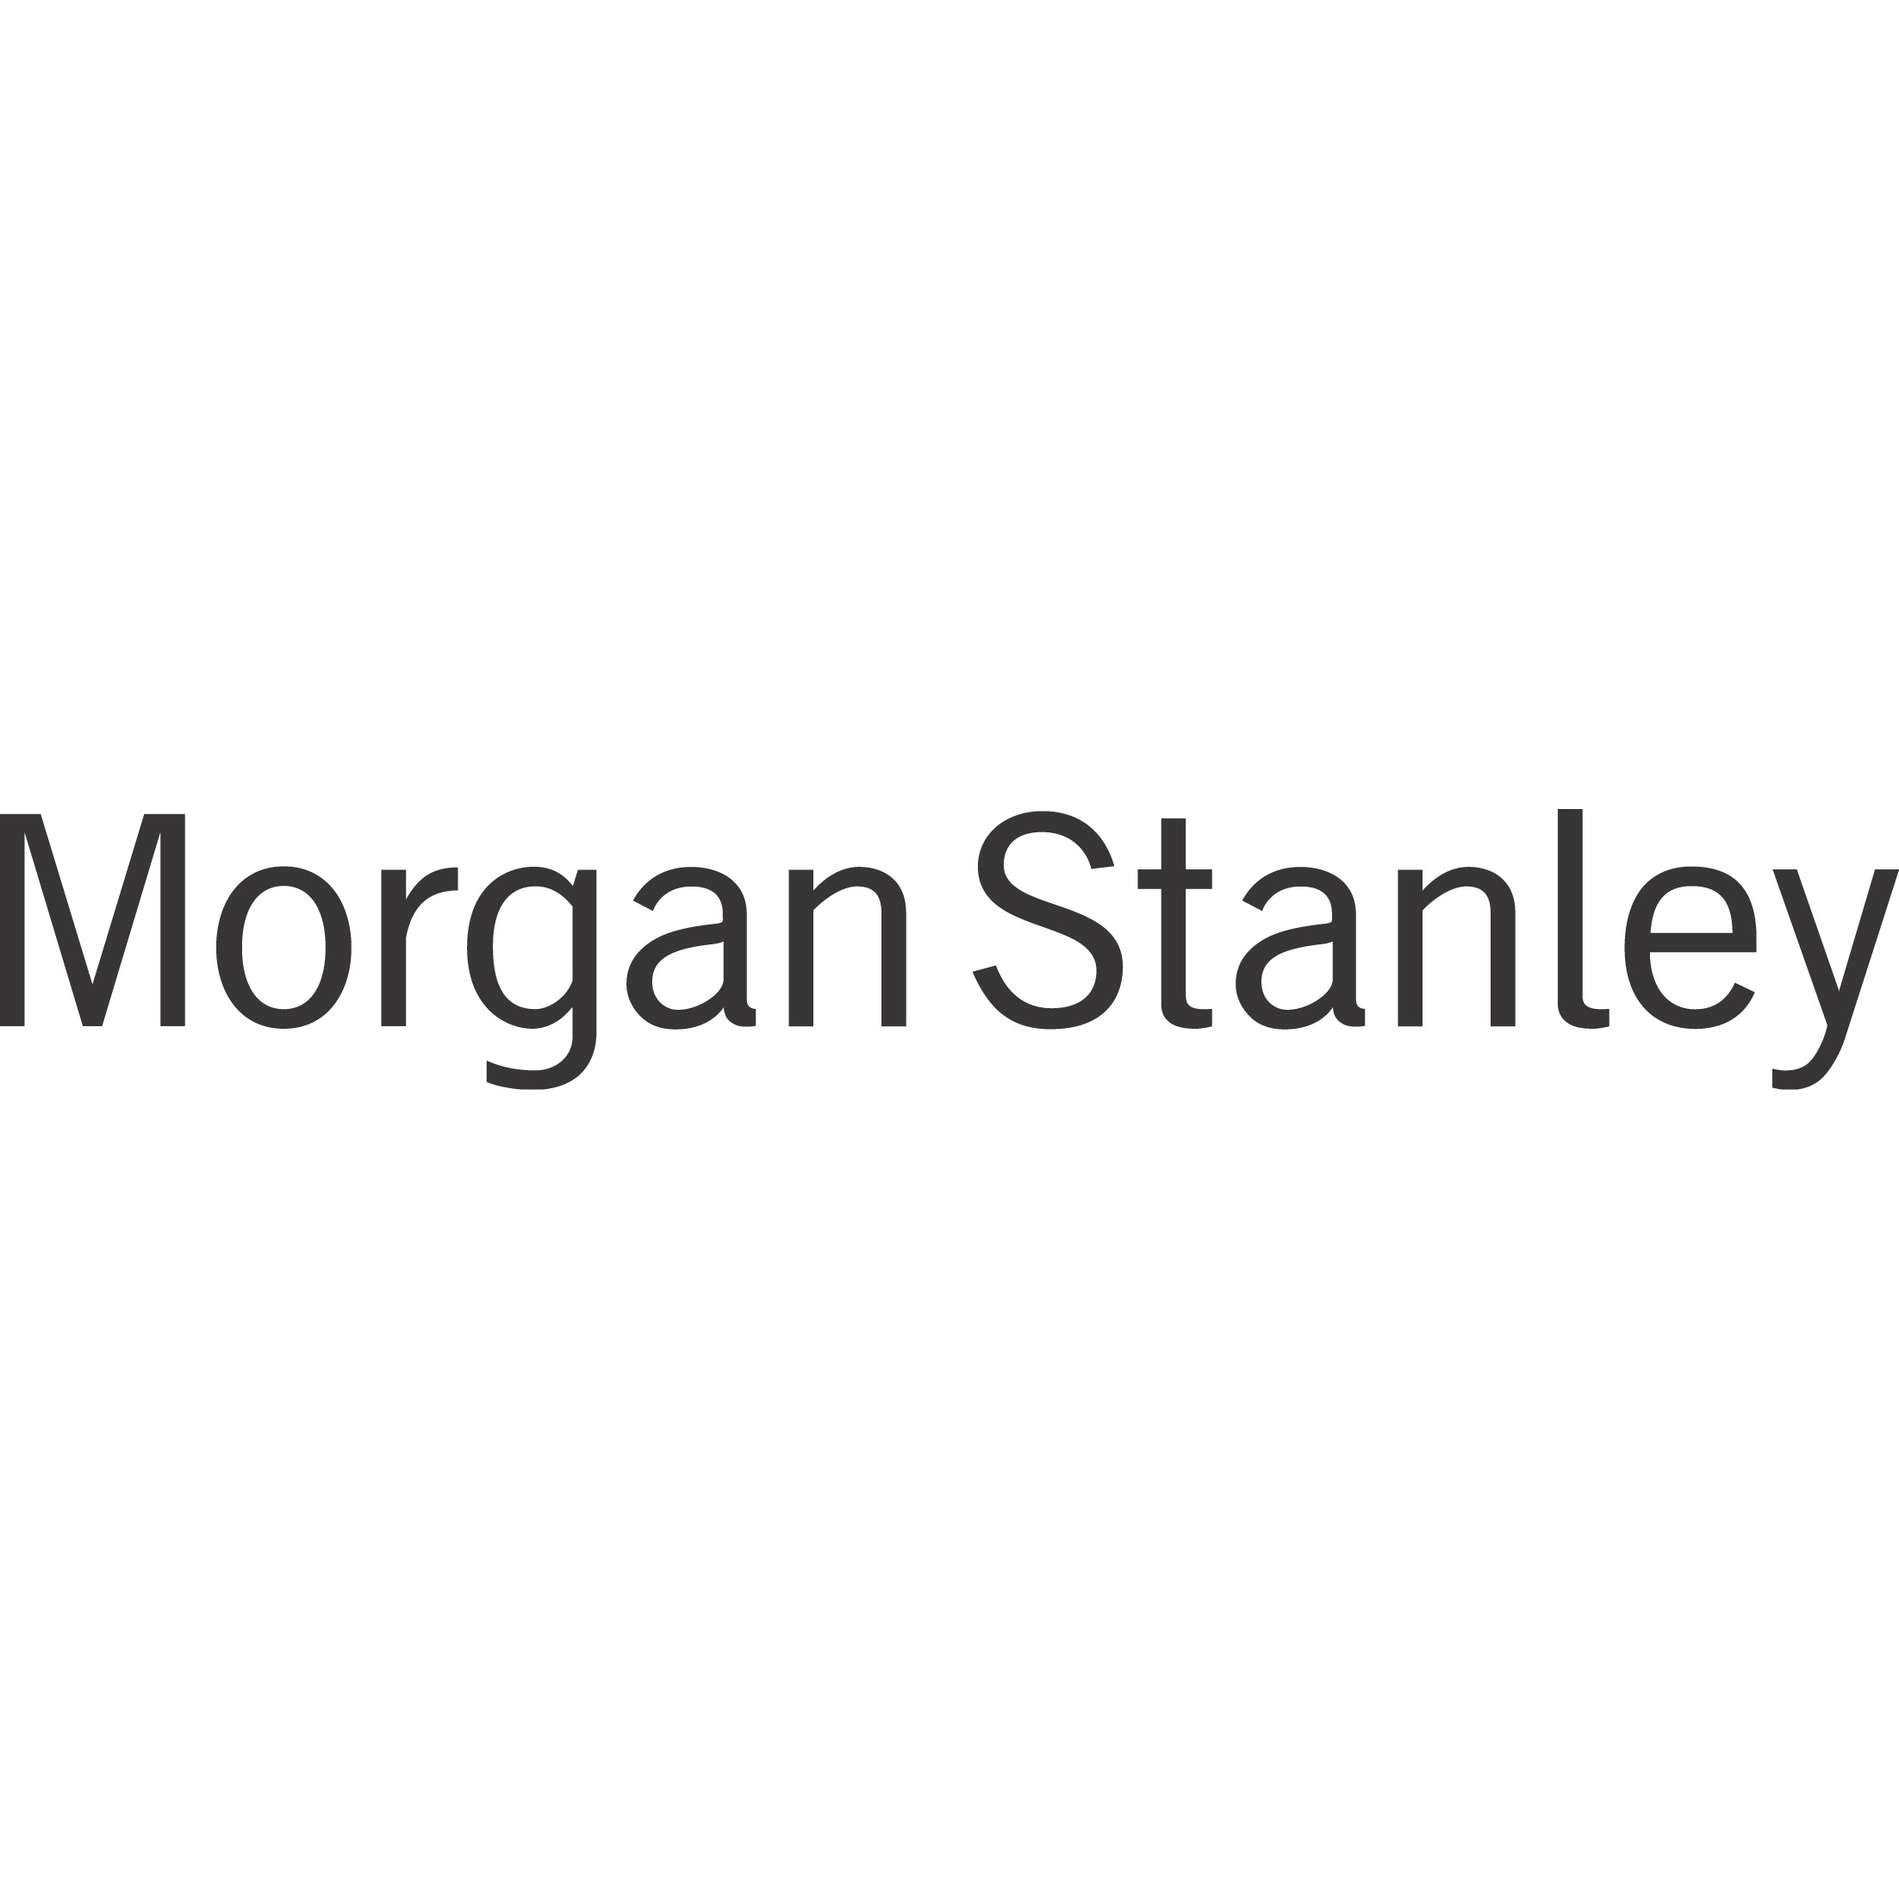 Lisa Blonkvist - Morgan Stanley